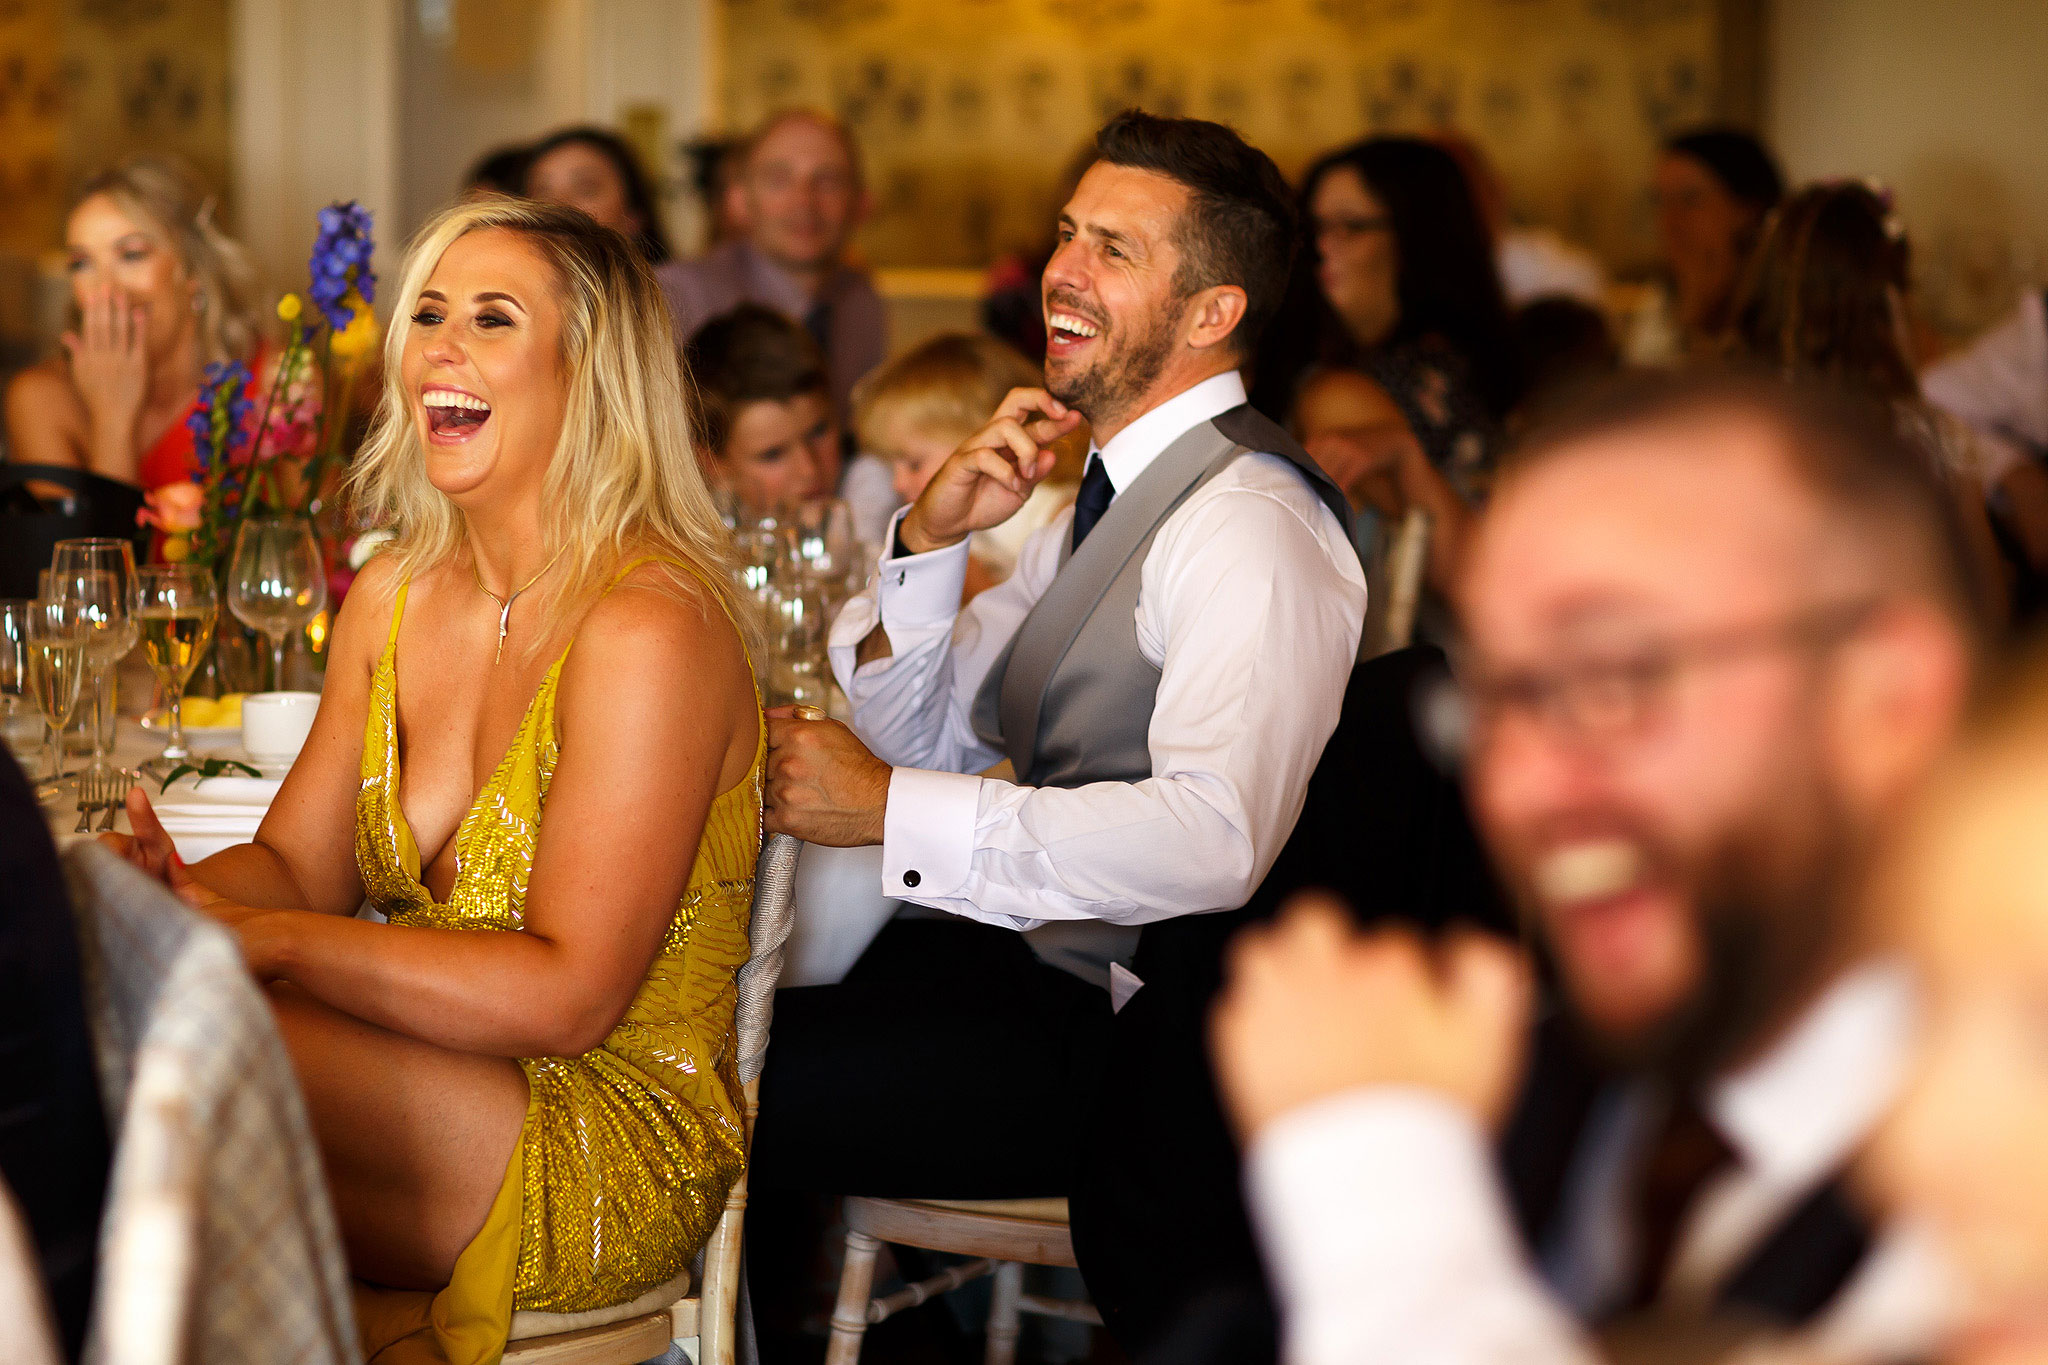 Guests laughing during speeches at Shireburn Arms